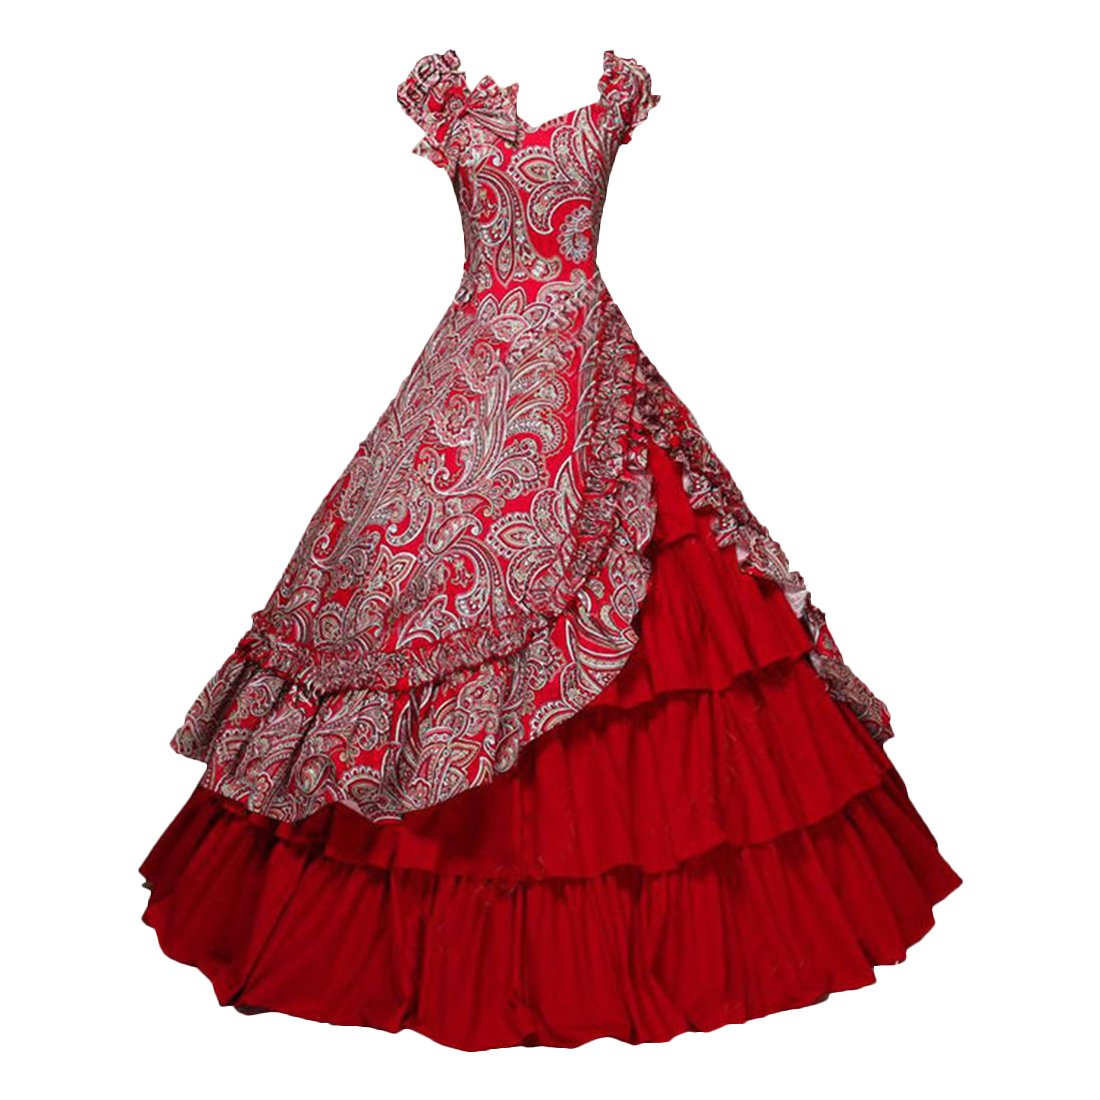 Partiss Womens Victorian Civil War Costume Southern Belle Floral Ball Gown Dress,XL,Red